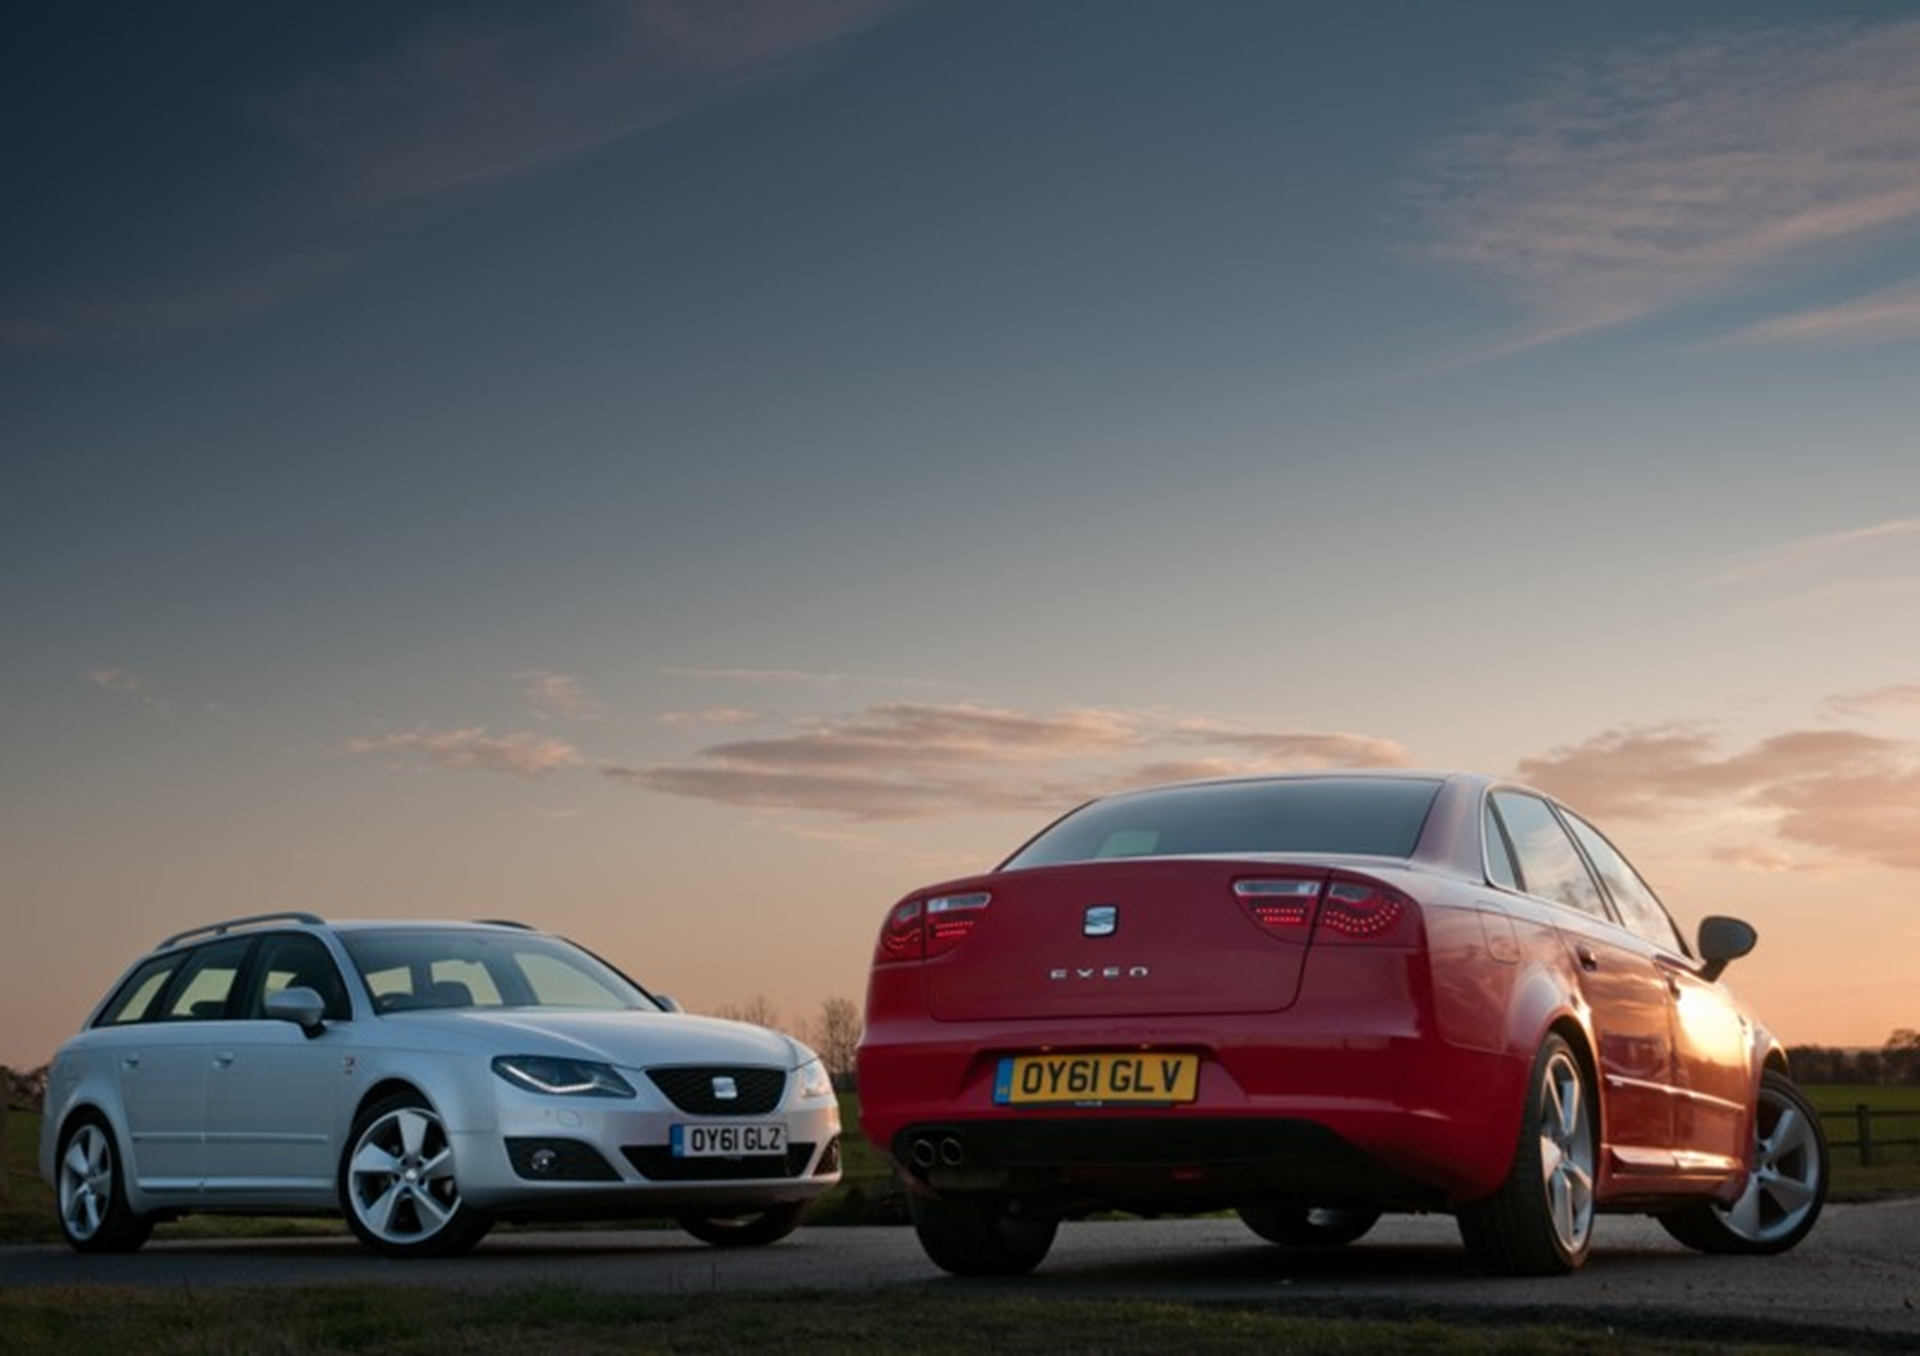 The 2012 SEAT Exeo ST and SEAT Exeo